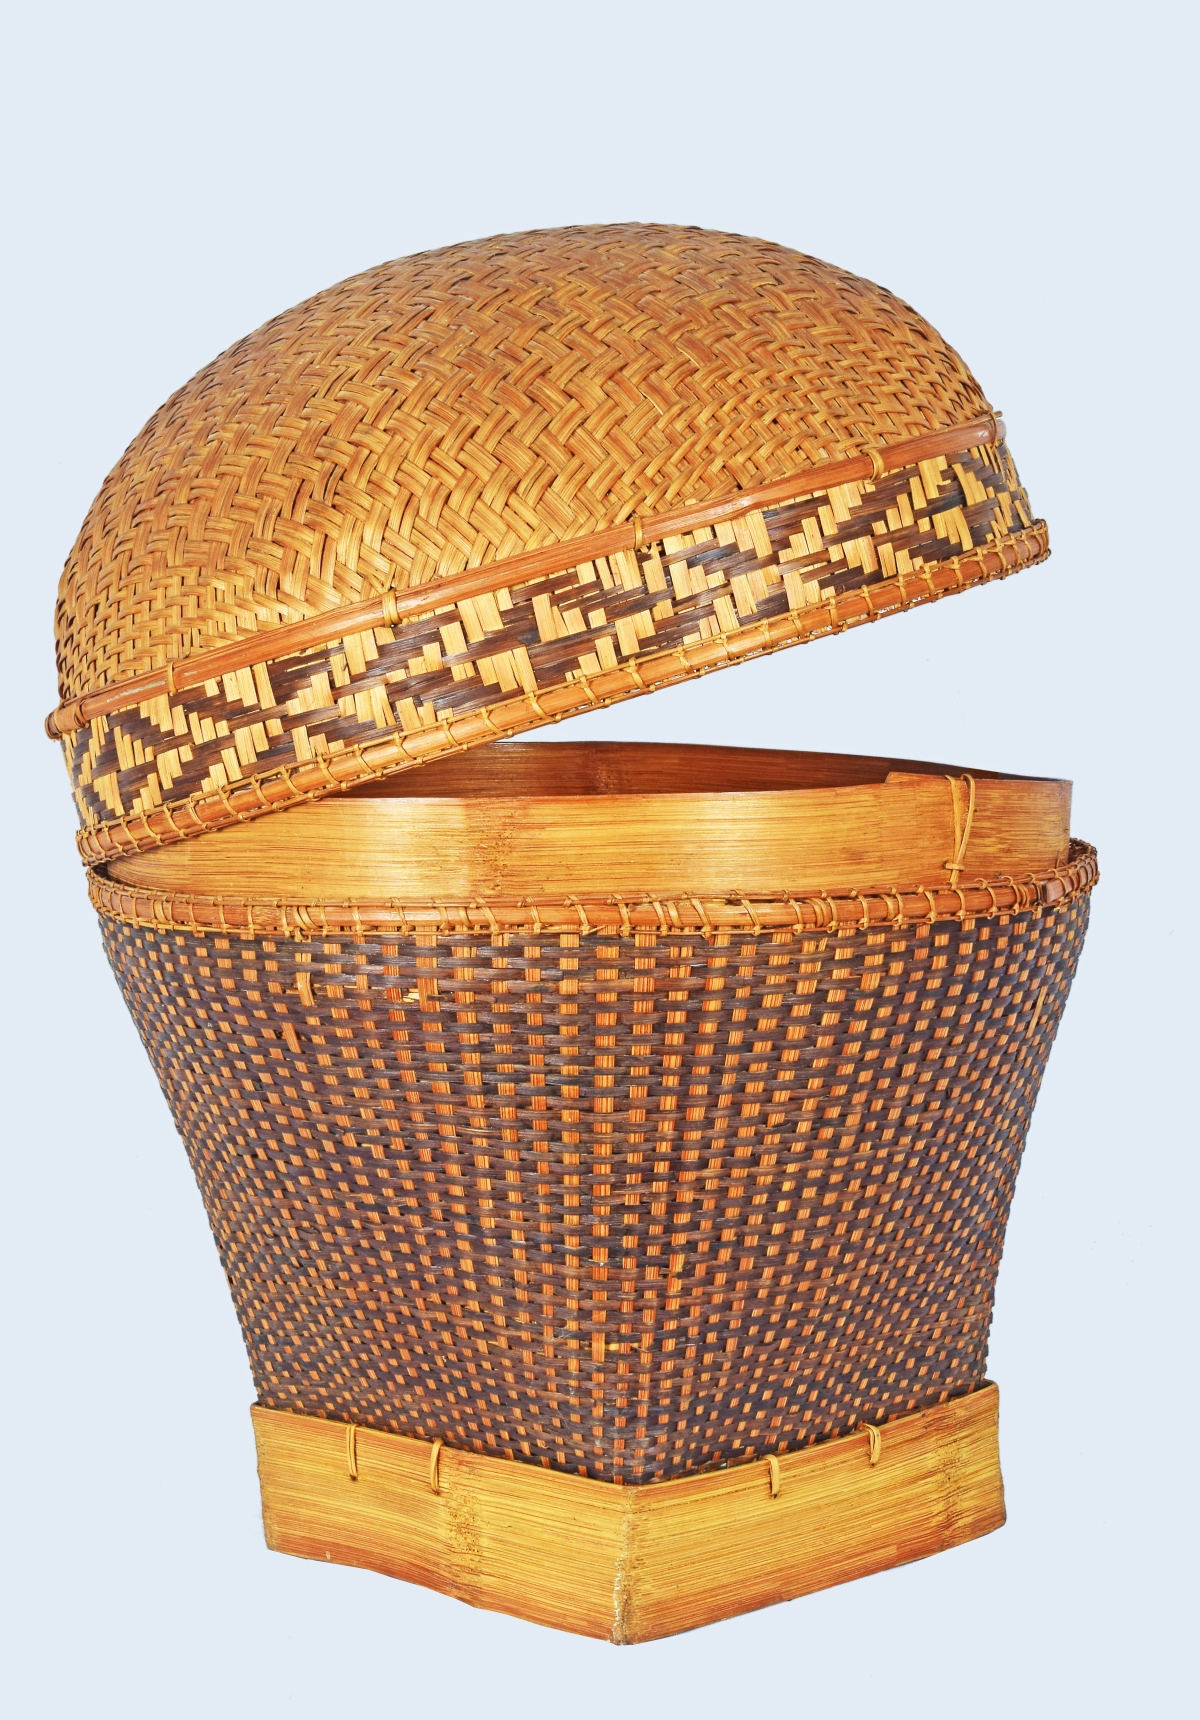 Bhopal: Phiruk, a ceremonial basket of Meitei community of Imphal exhibited at IGRMS online exhibition